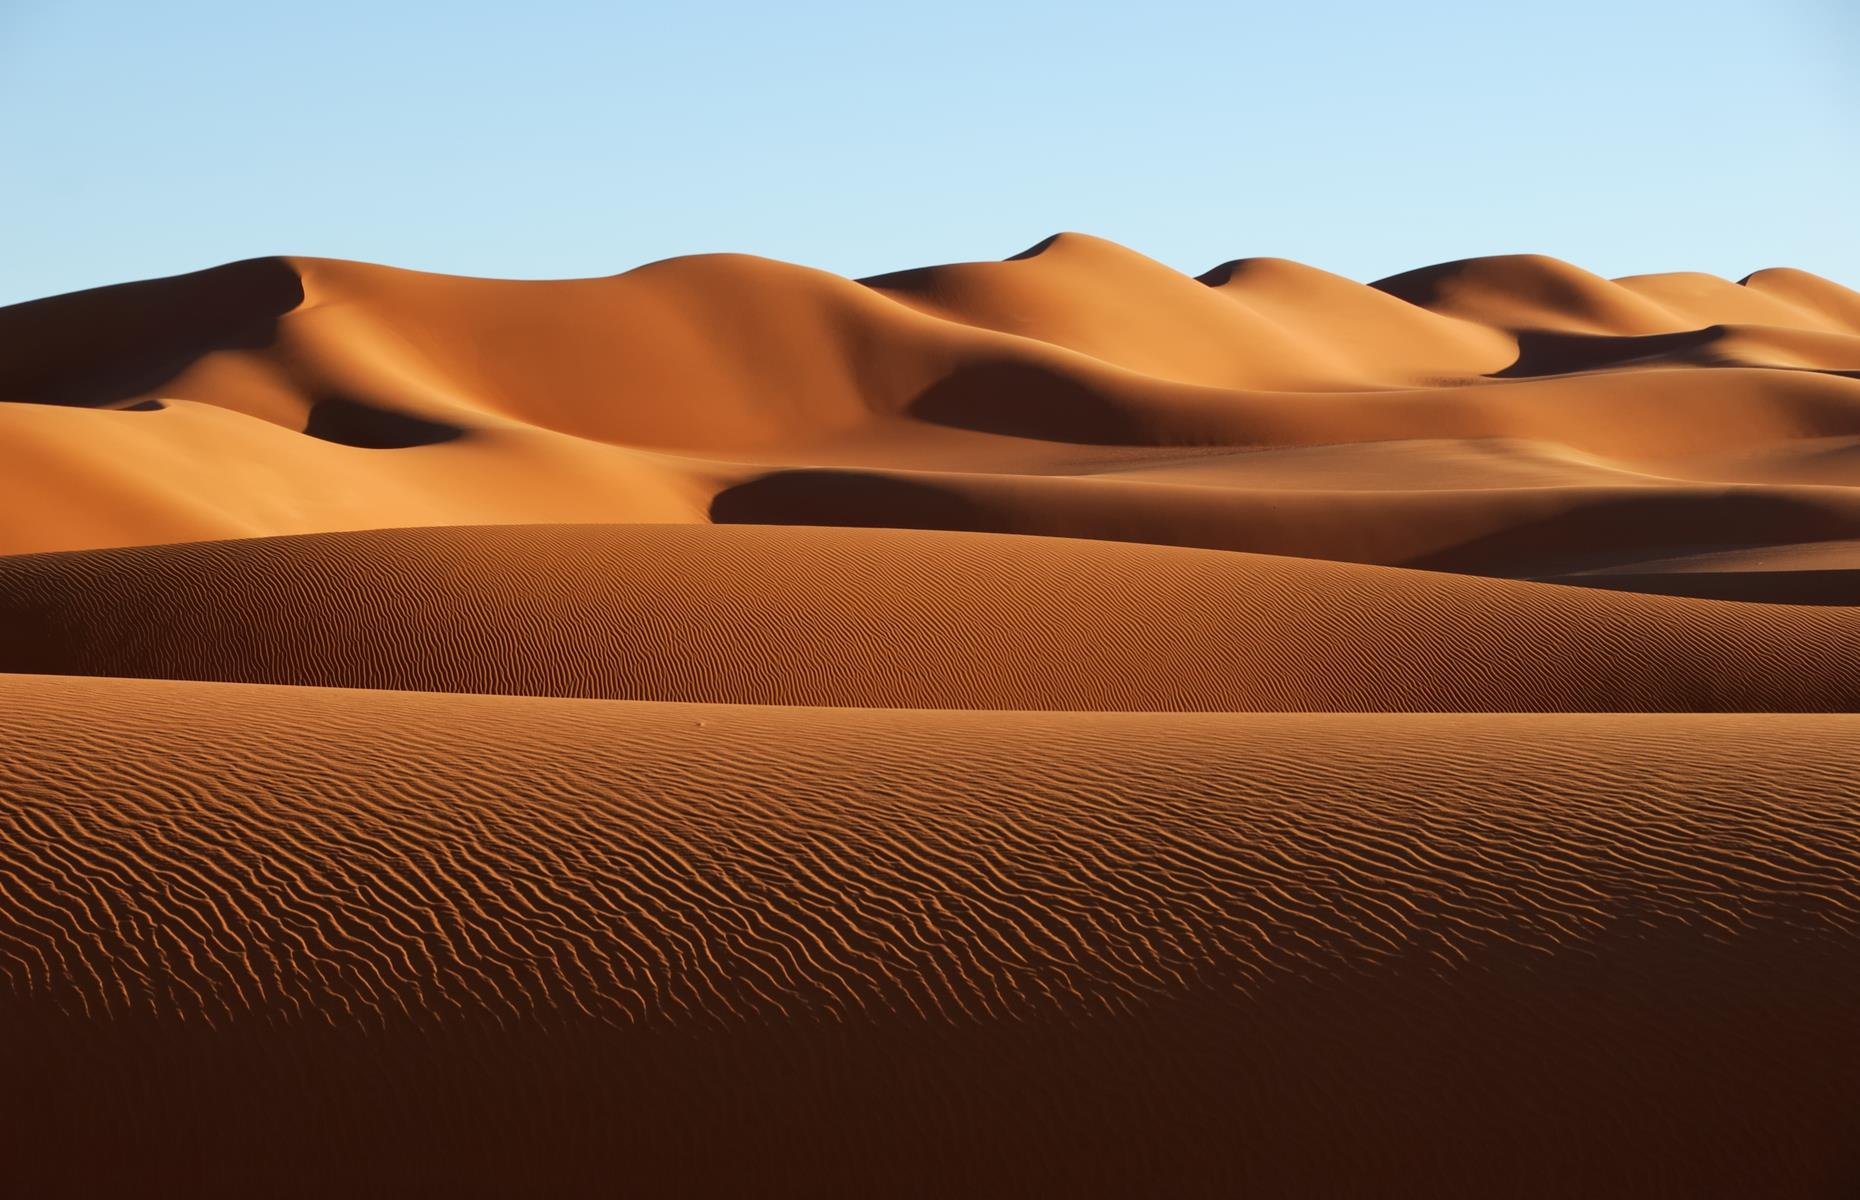 Slide 29 of 37: As a result of climate change, the Sahara Desert has grown significantly over the last 100 years. Changes in rainfall levels has allowed the world's largest hot desert to grow by around 10%.Discoveramazing ruins where Mother Nature ran riot.